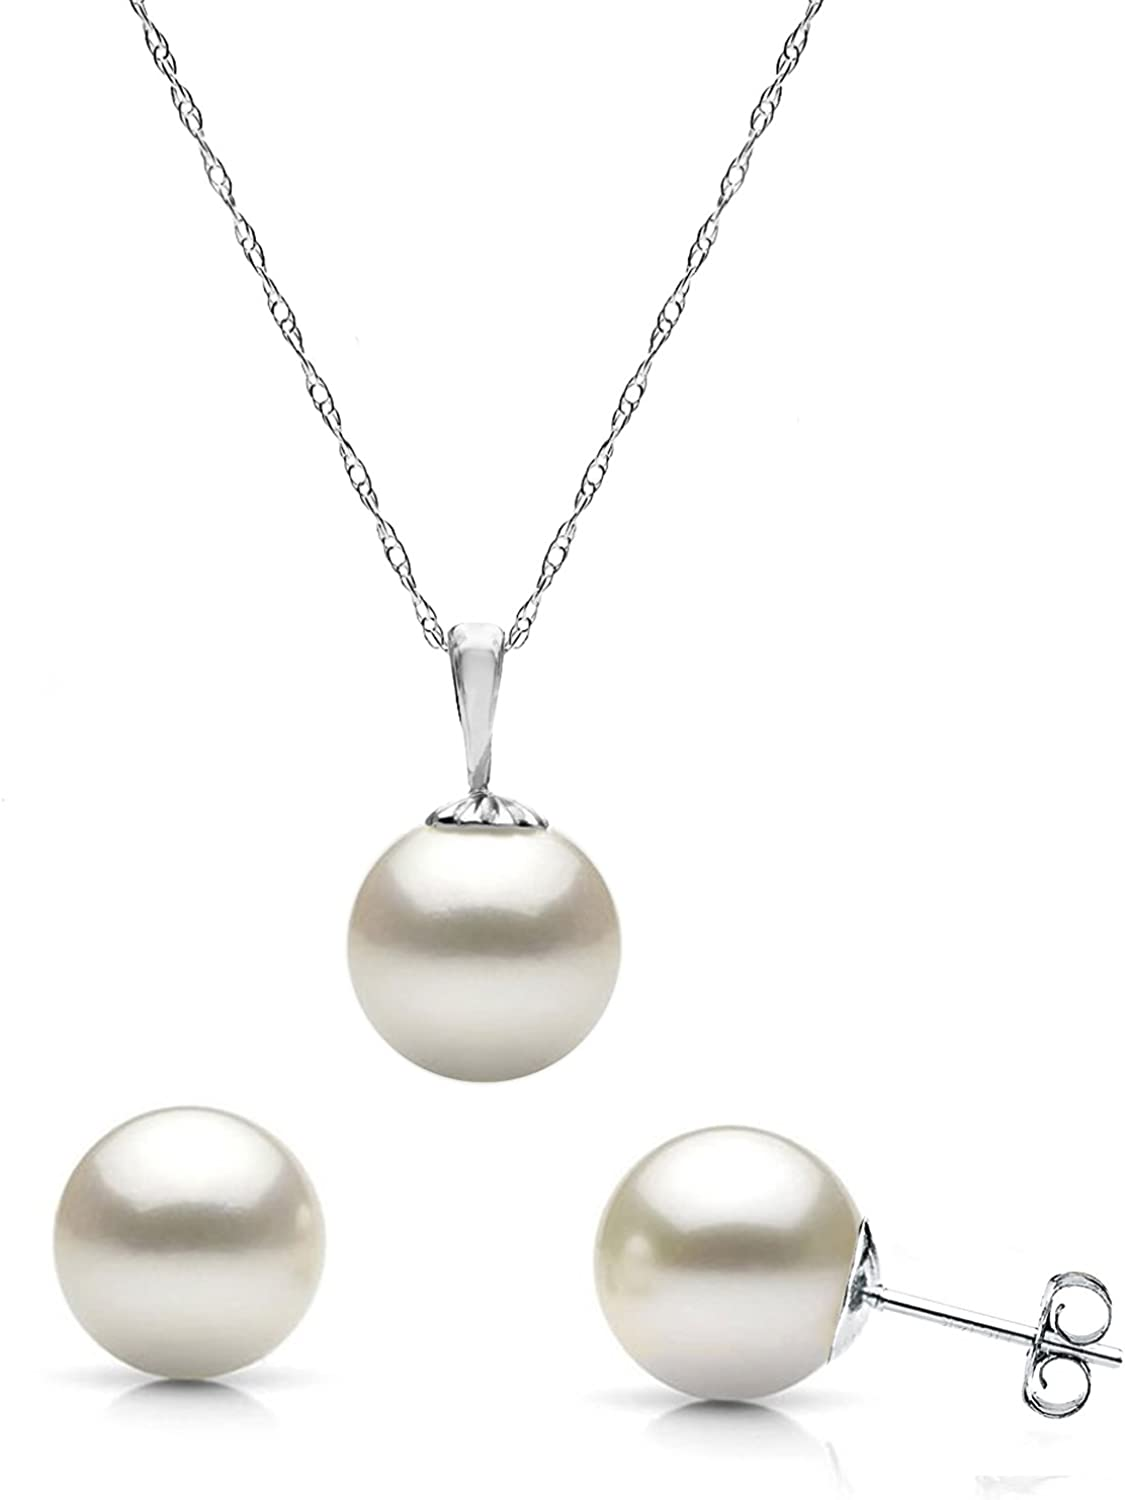 La Regis Jewelry White Cultured Japanese Akoya Pearl Pendant Necklace and Stud Earrings 14K Gold